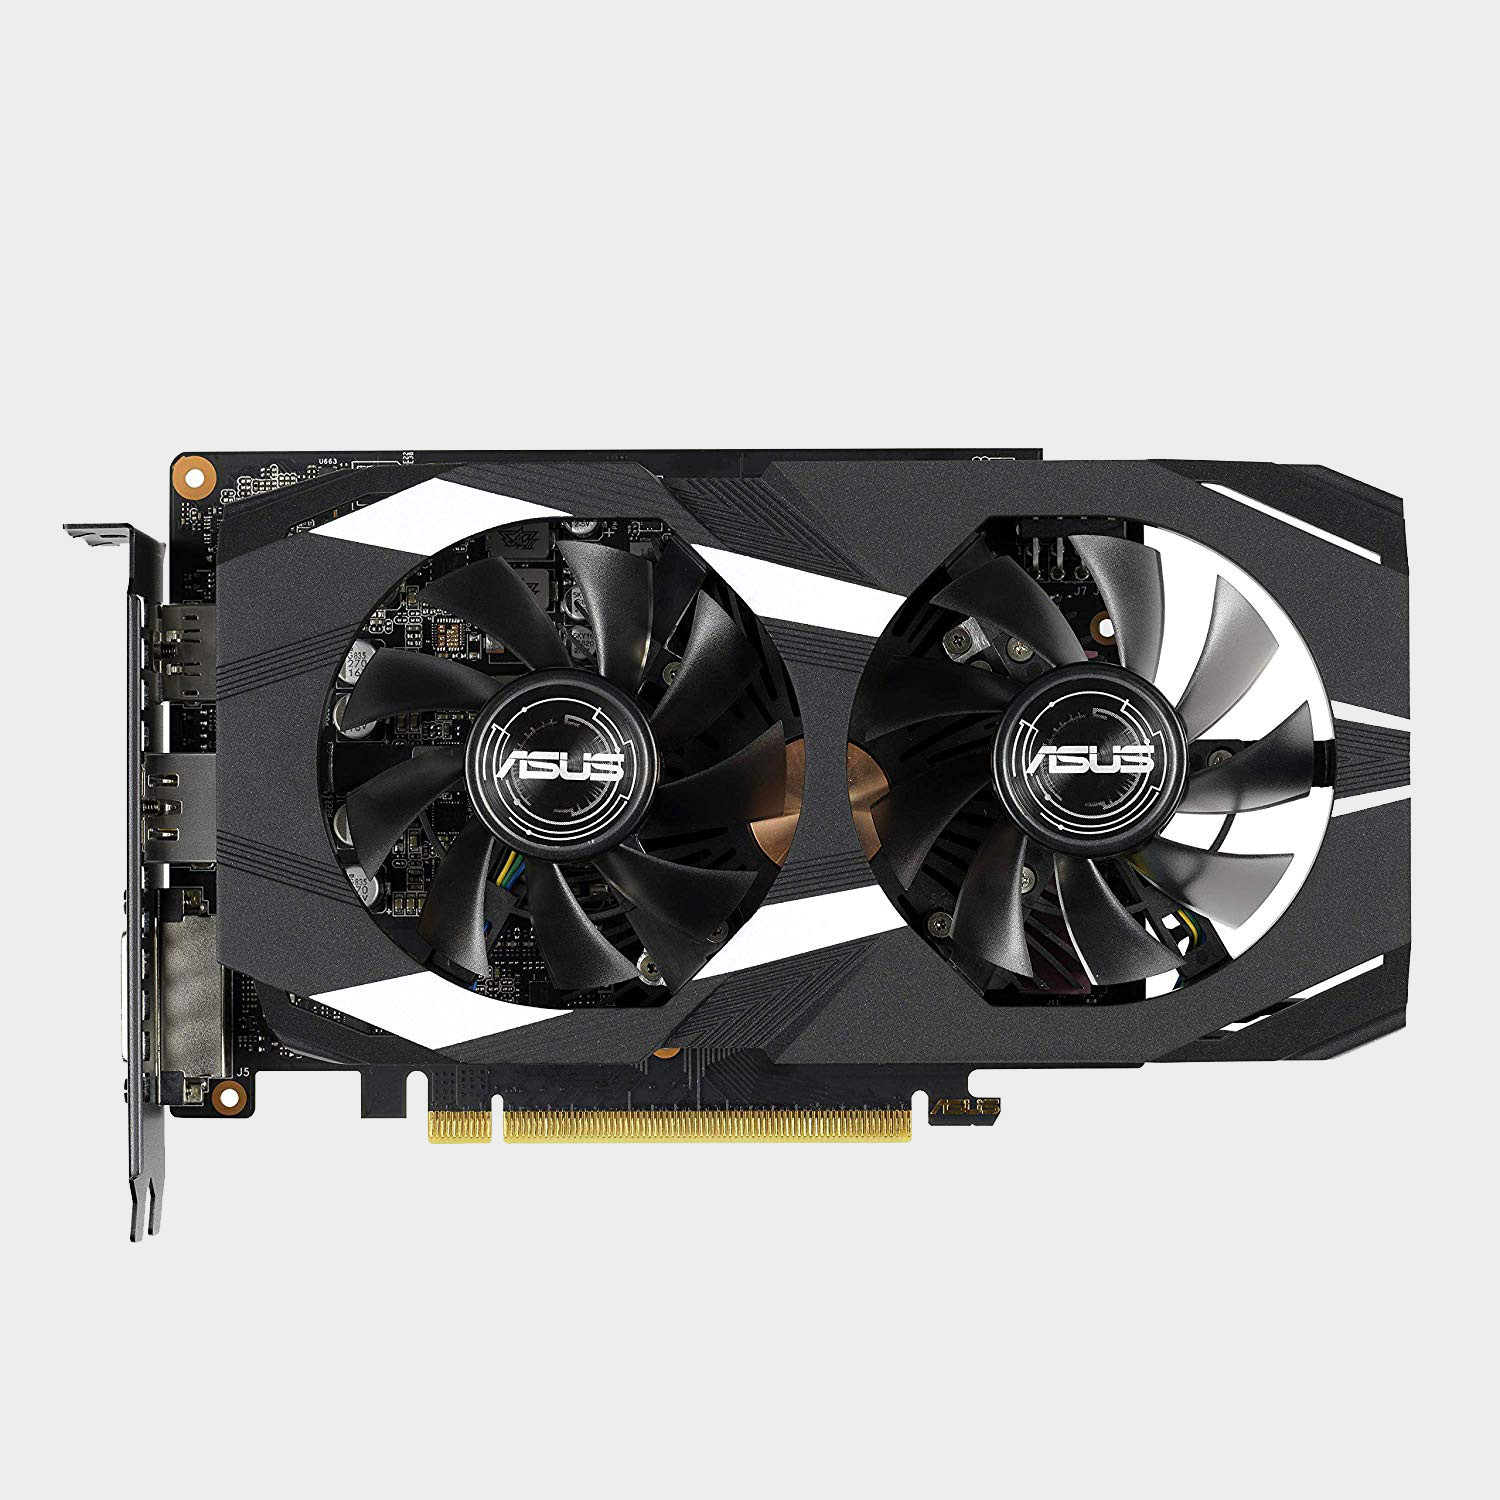 Asus's overclocked GTX 1660 Ti just hit its lowest ever UK price on Amazon | PC Gamer